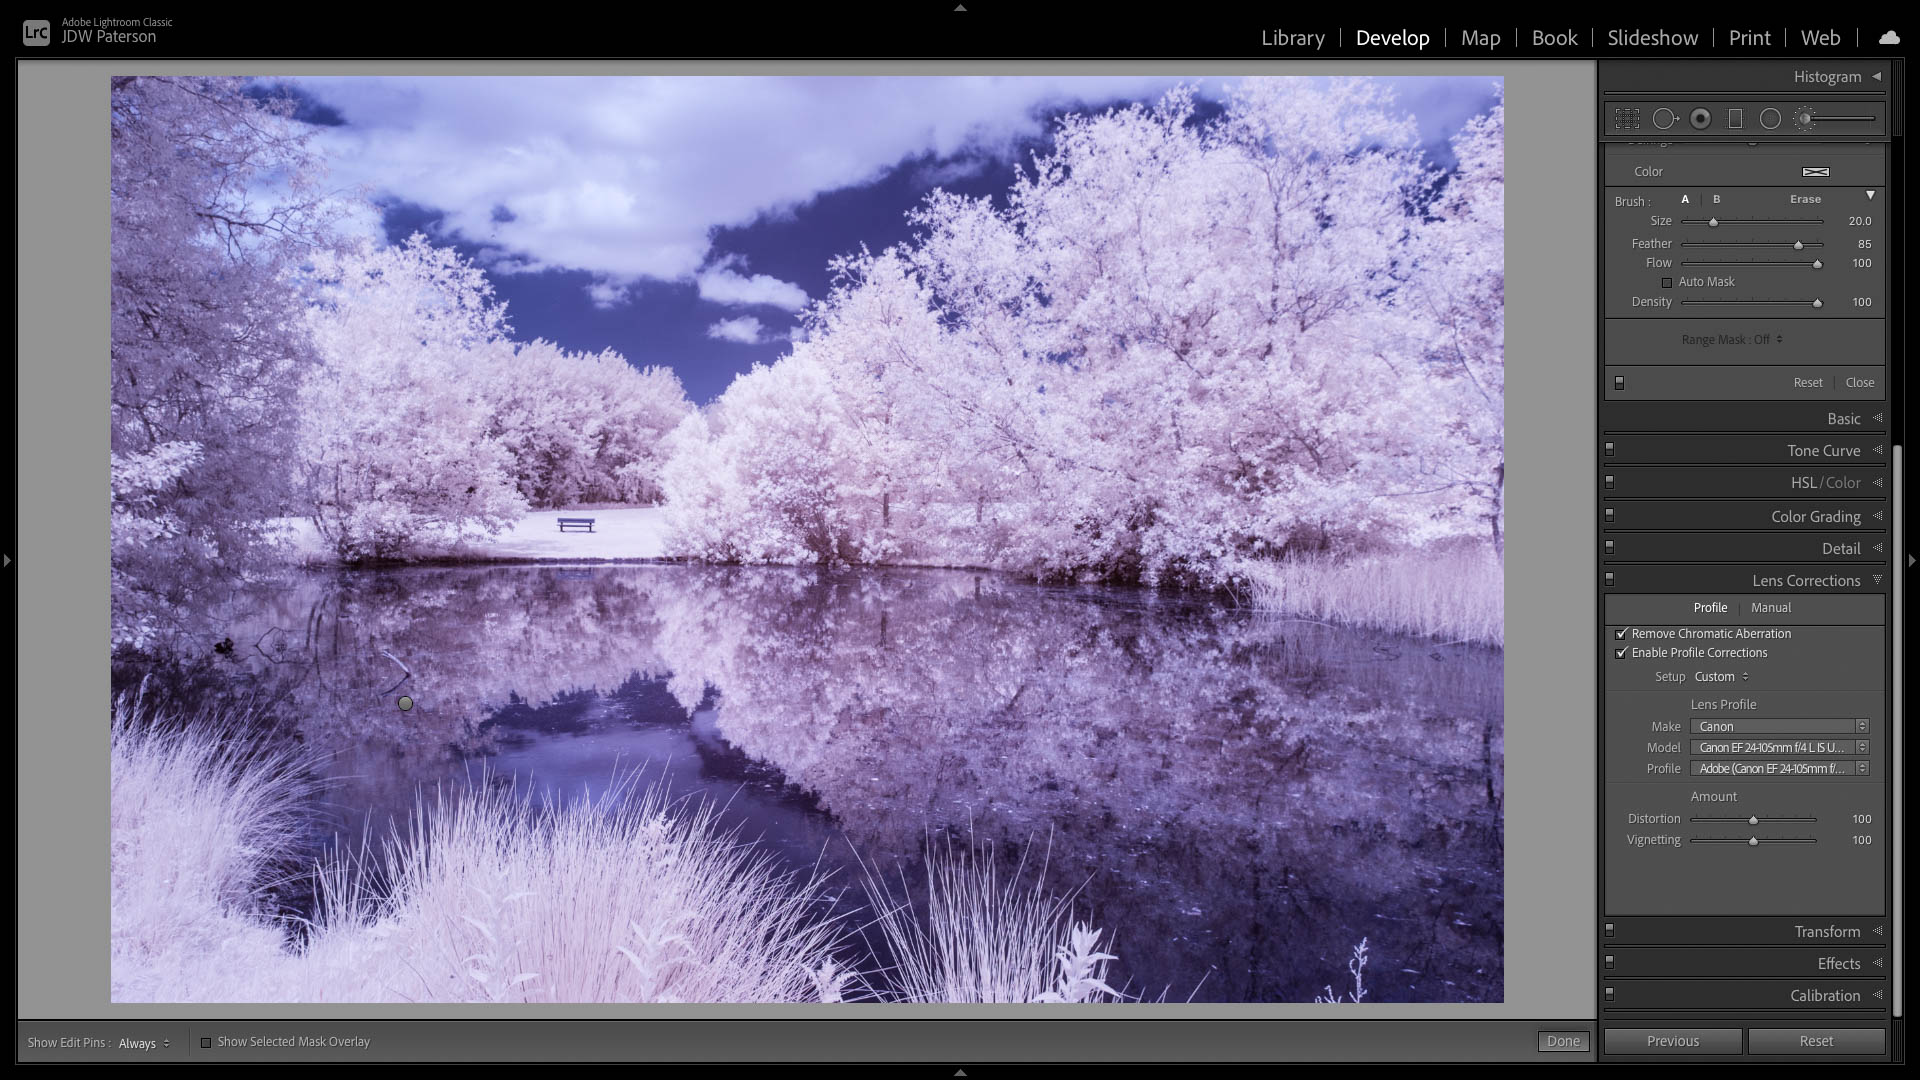 Lightroom screenshot showing the Lens Correction panel to fix lens issues